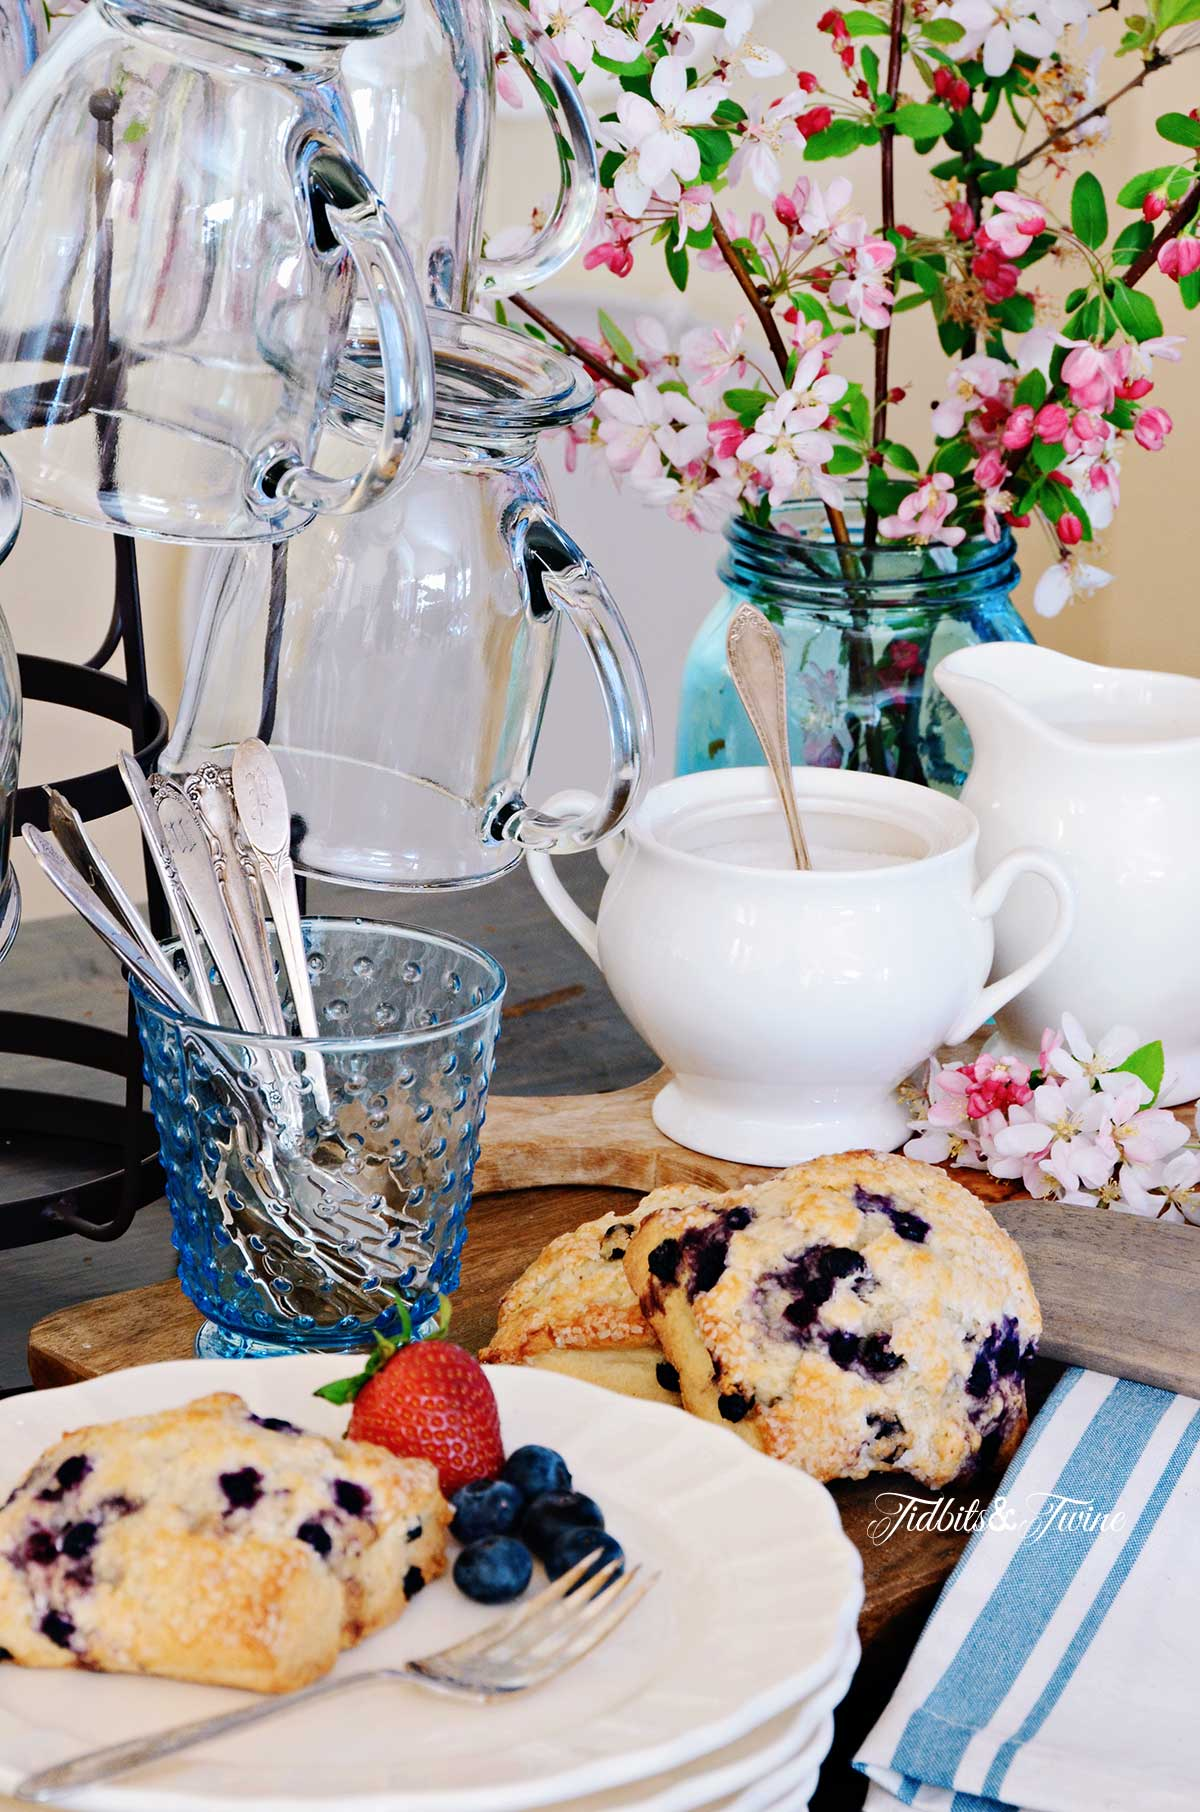 Breakfast vignette showing blueberry scones next to bottle drying rack holding clear glass mugs and pink flowers in the background